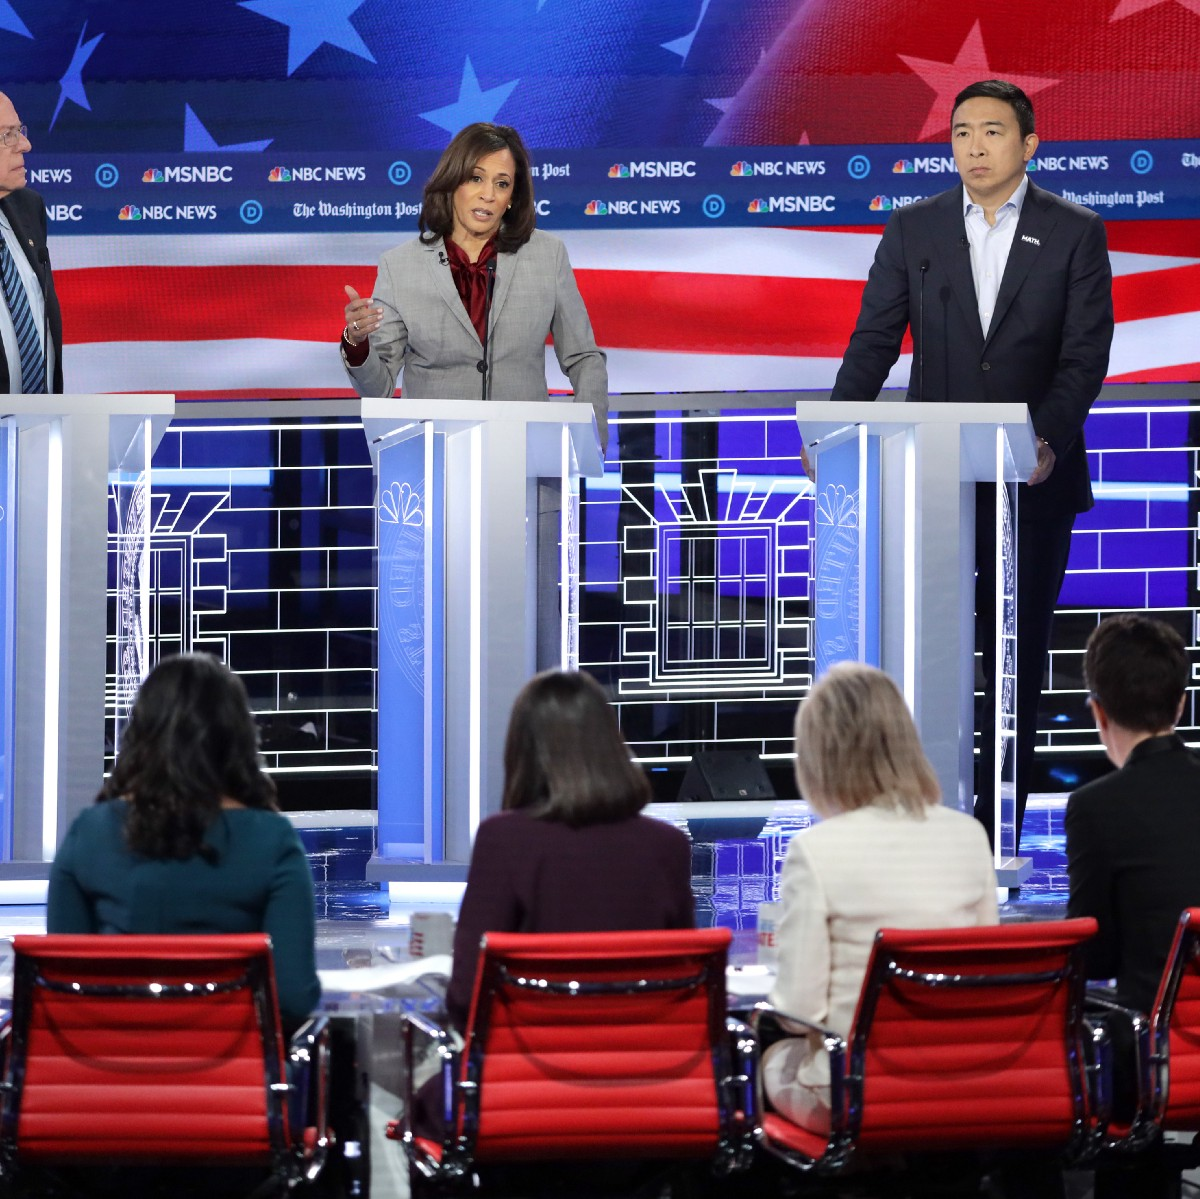 The Fifth Democratic Debate Showed the Value of Female Moderators